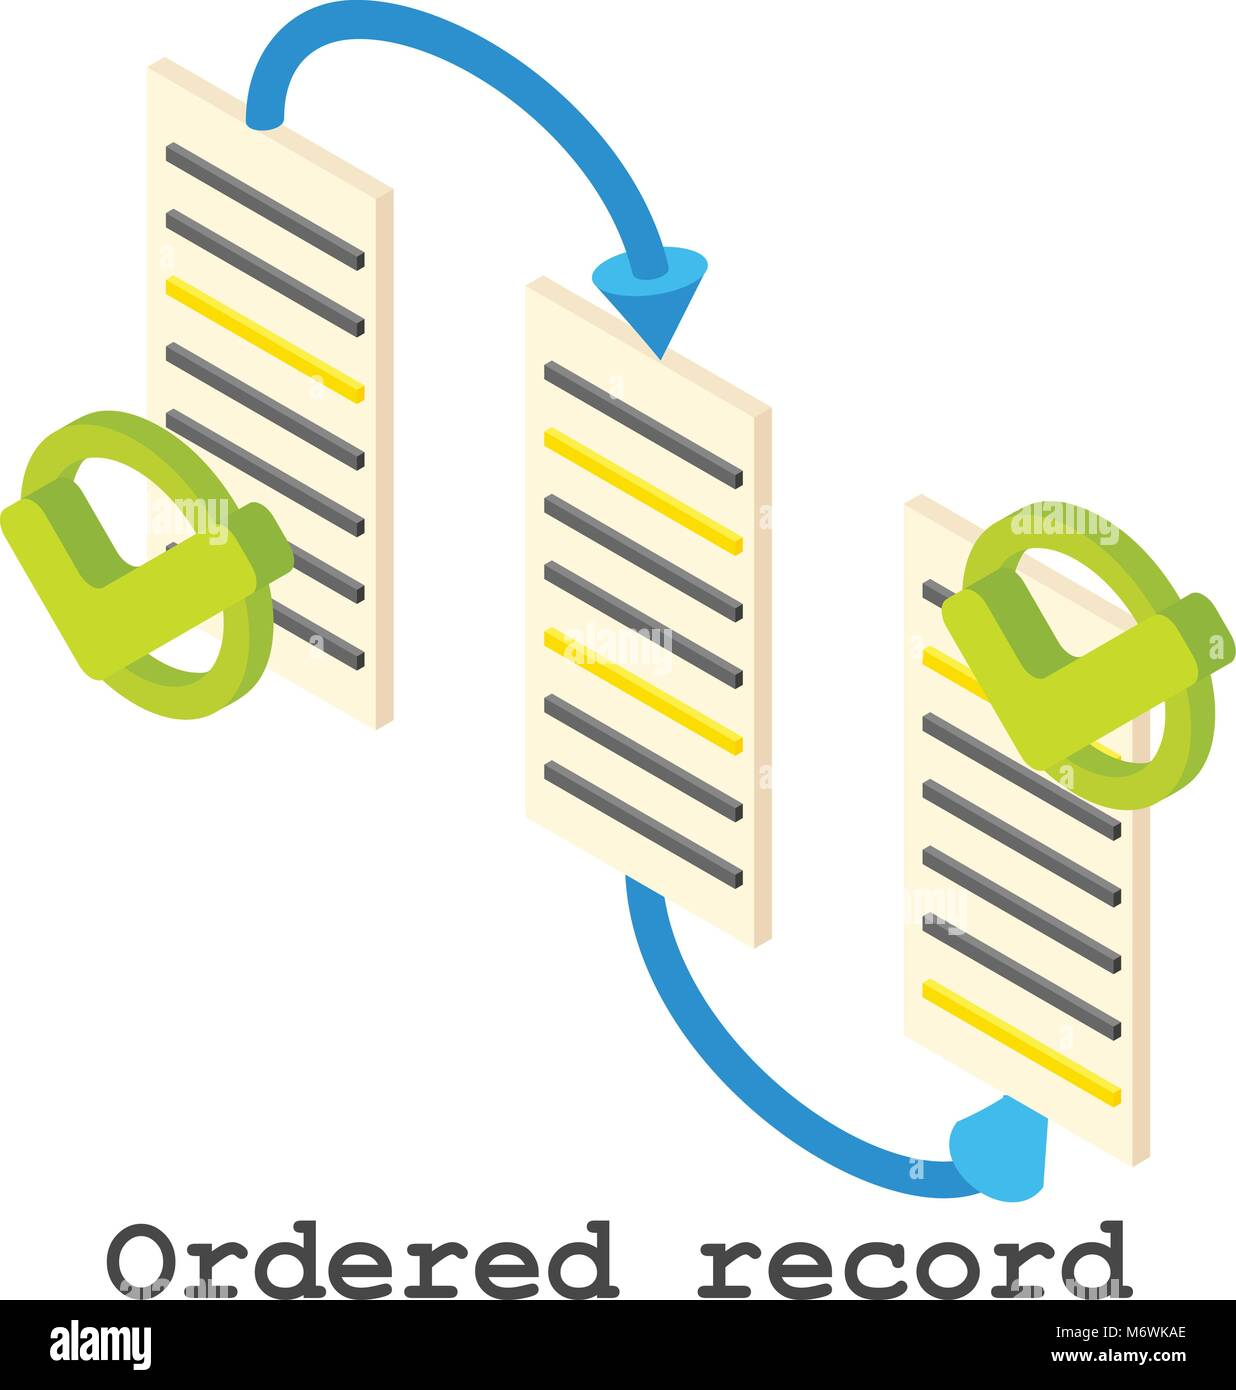 Ordered record icon, isometric style - Stock Vector